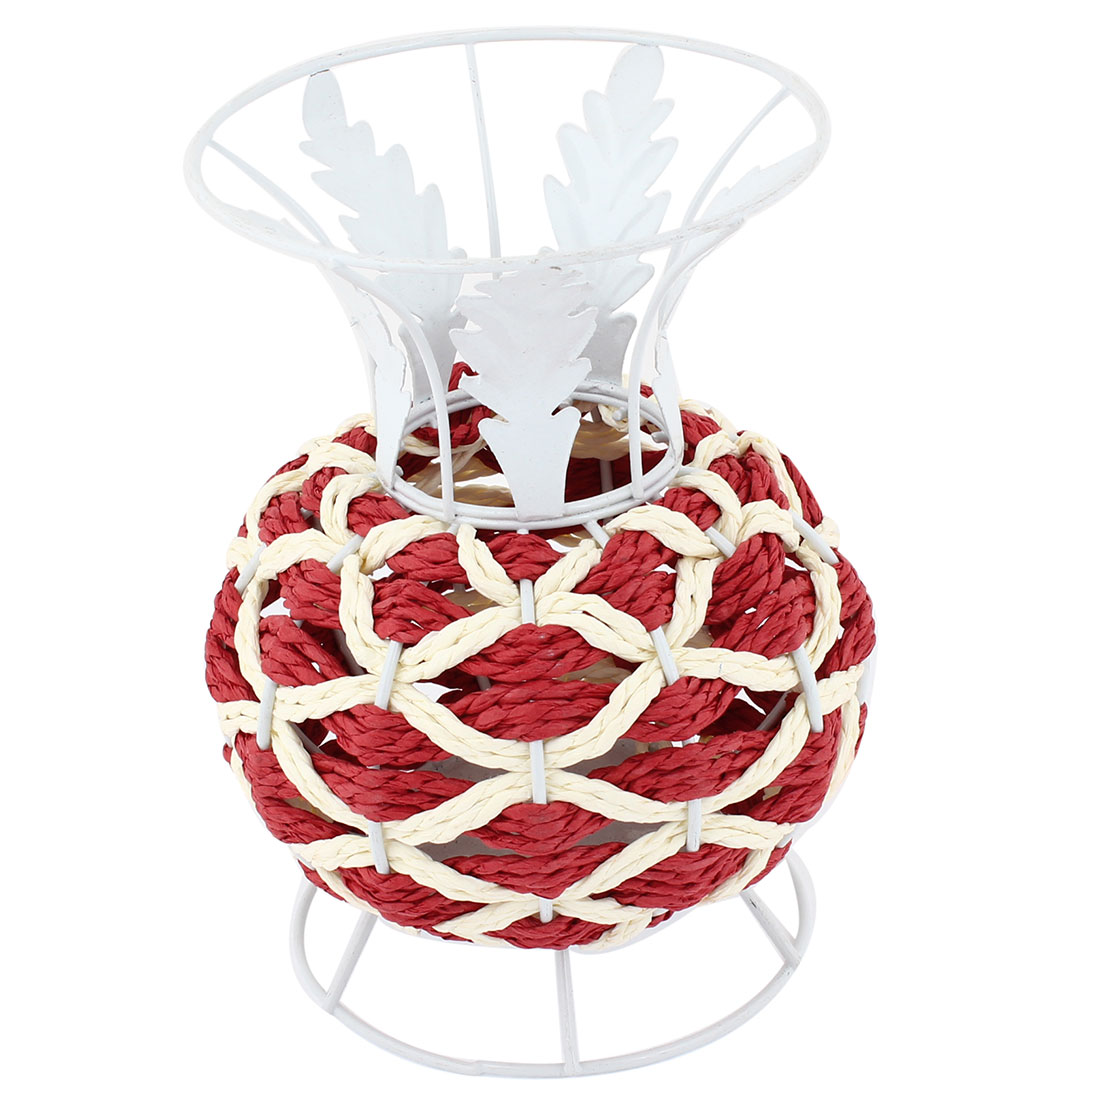 Office Tree Decor Brick Red Braided Cord Vase Pen Ruler Craft Basket Holder